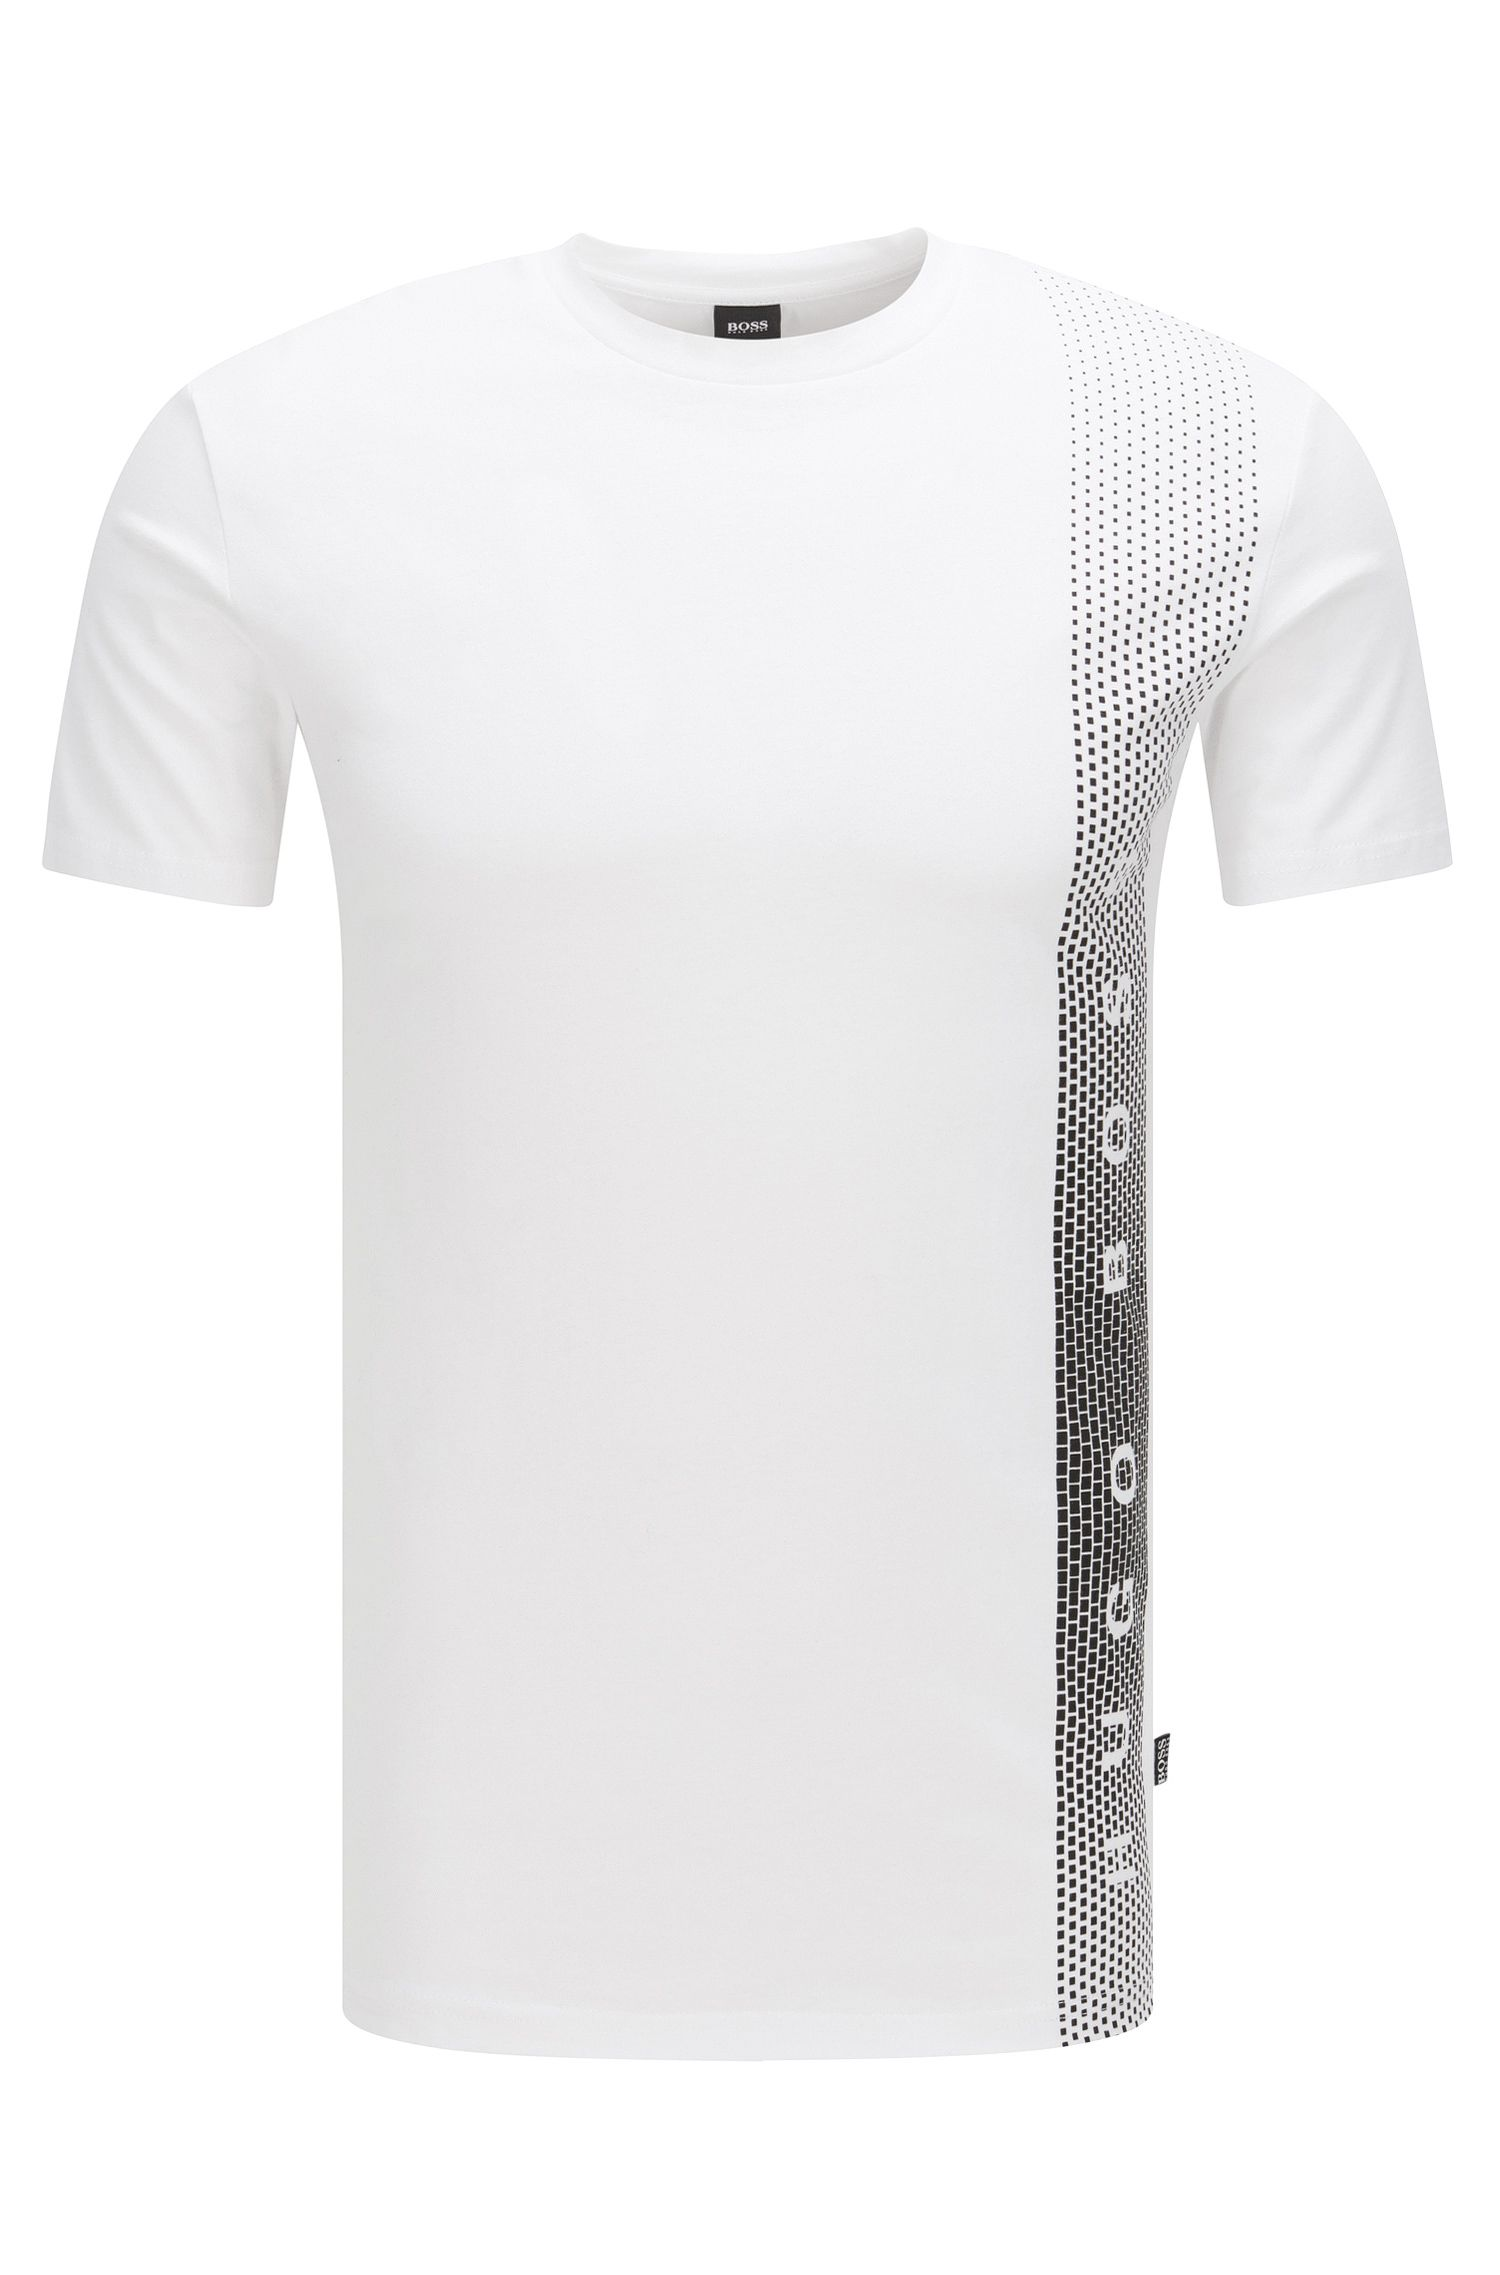 Slim-fit cotton T-shirt with UV protection